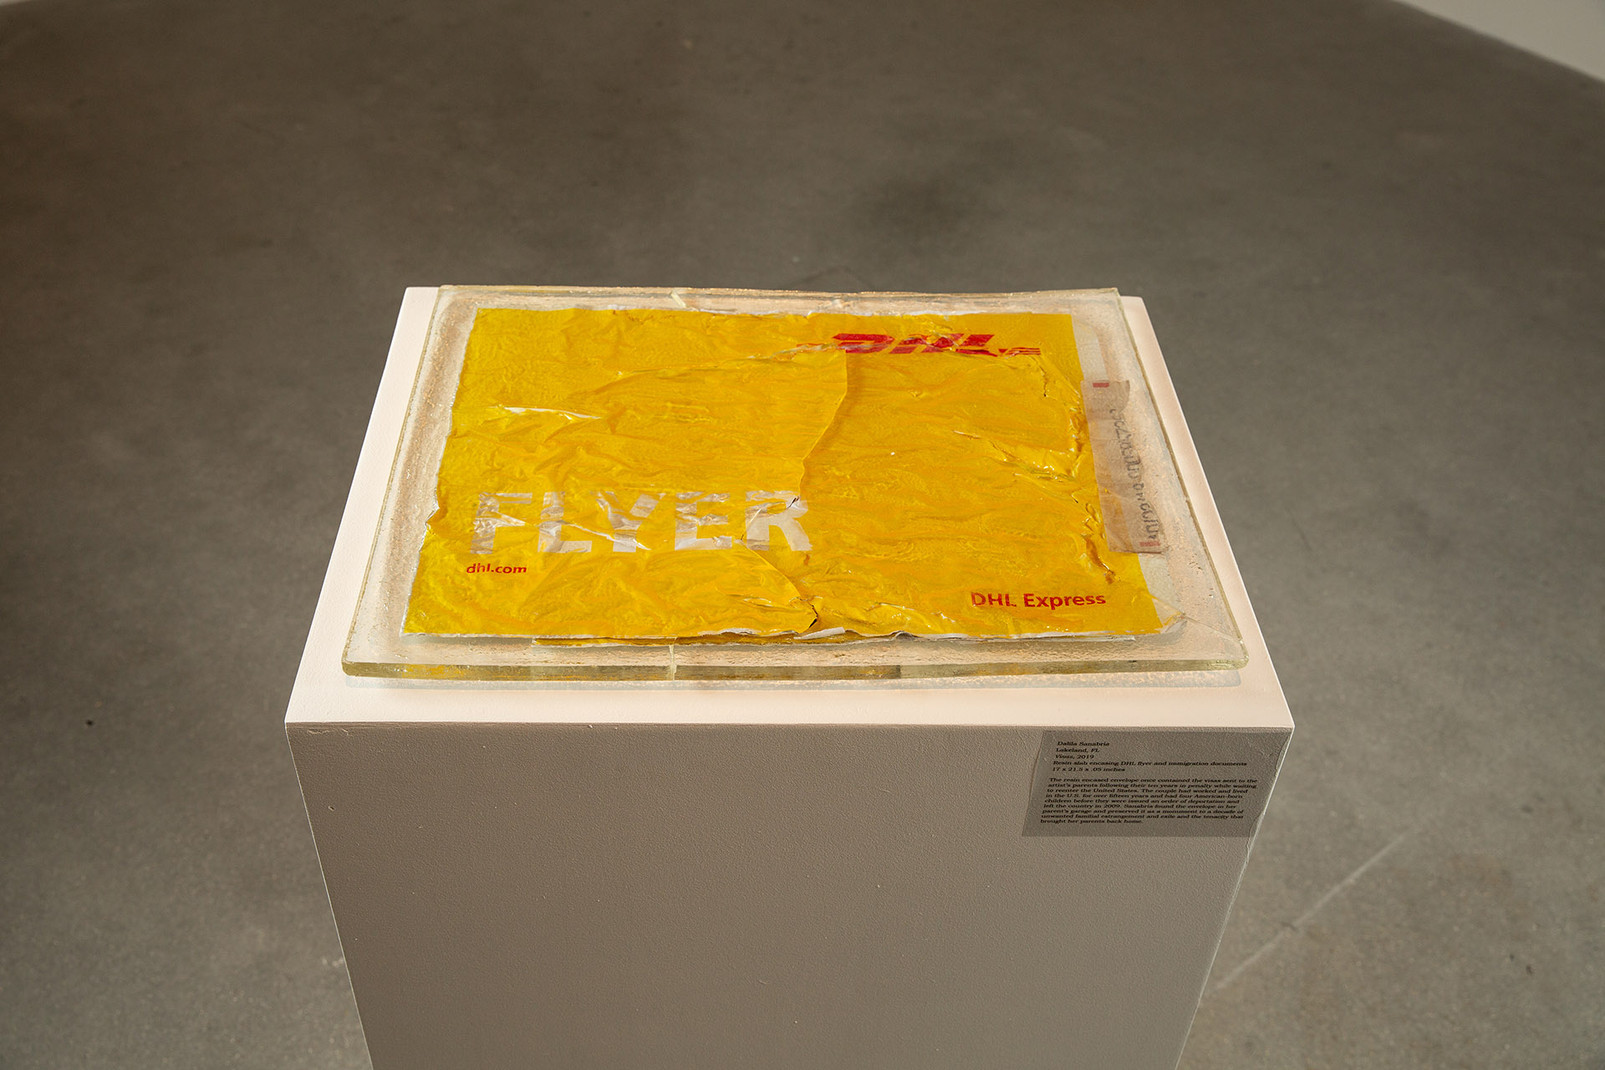 "Dalila Sanabria, ""Visas,"" 2019. Resin slab of DHL flyers, unframed, 17 x 21.75 x 0.5 in. Photo by Mariana Sheppard"